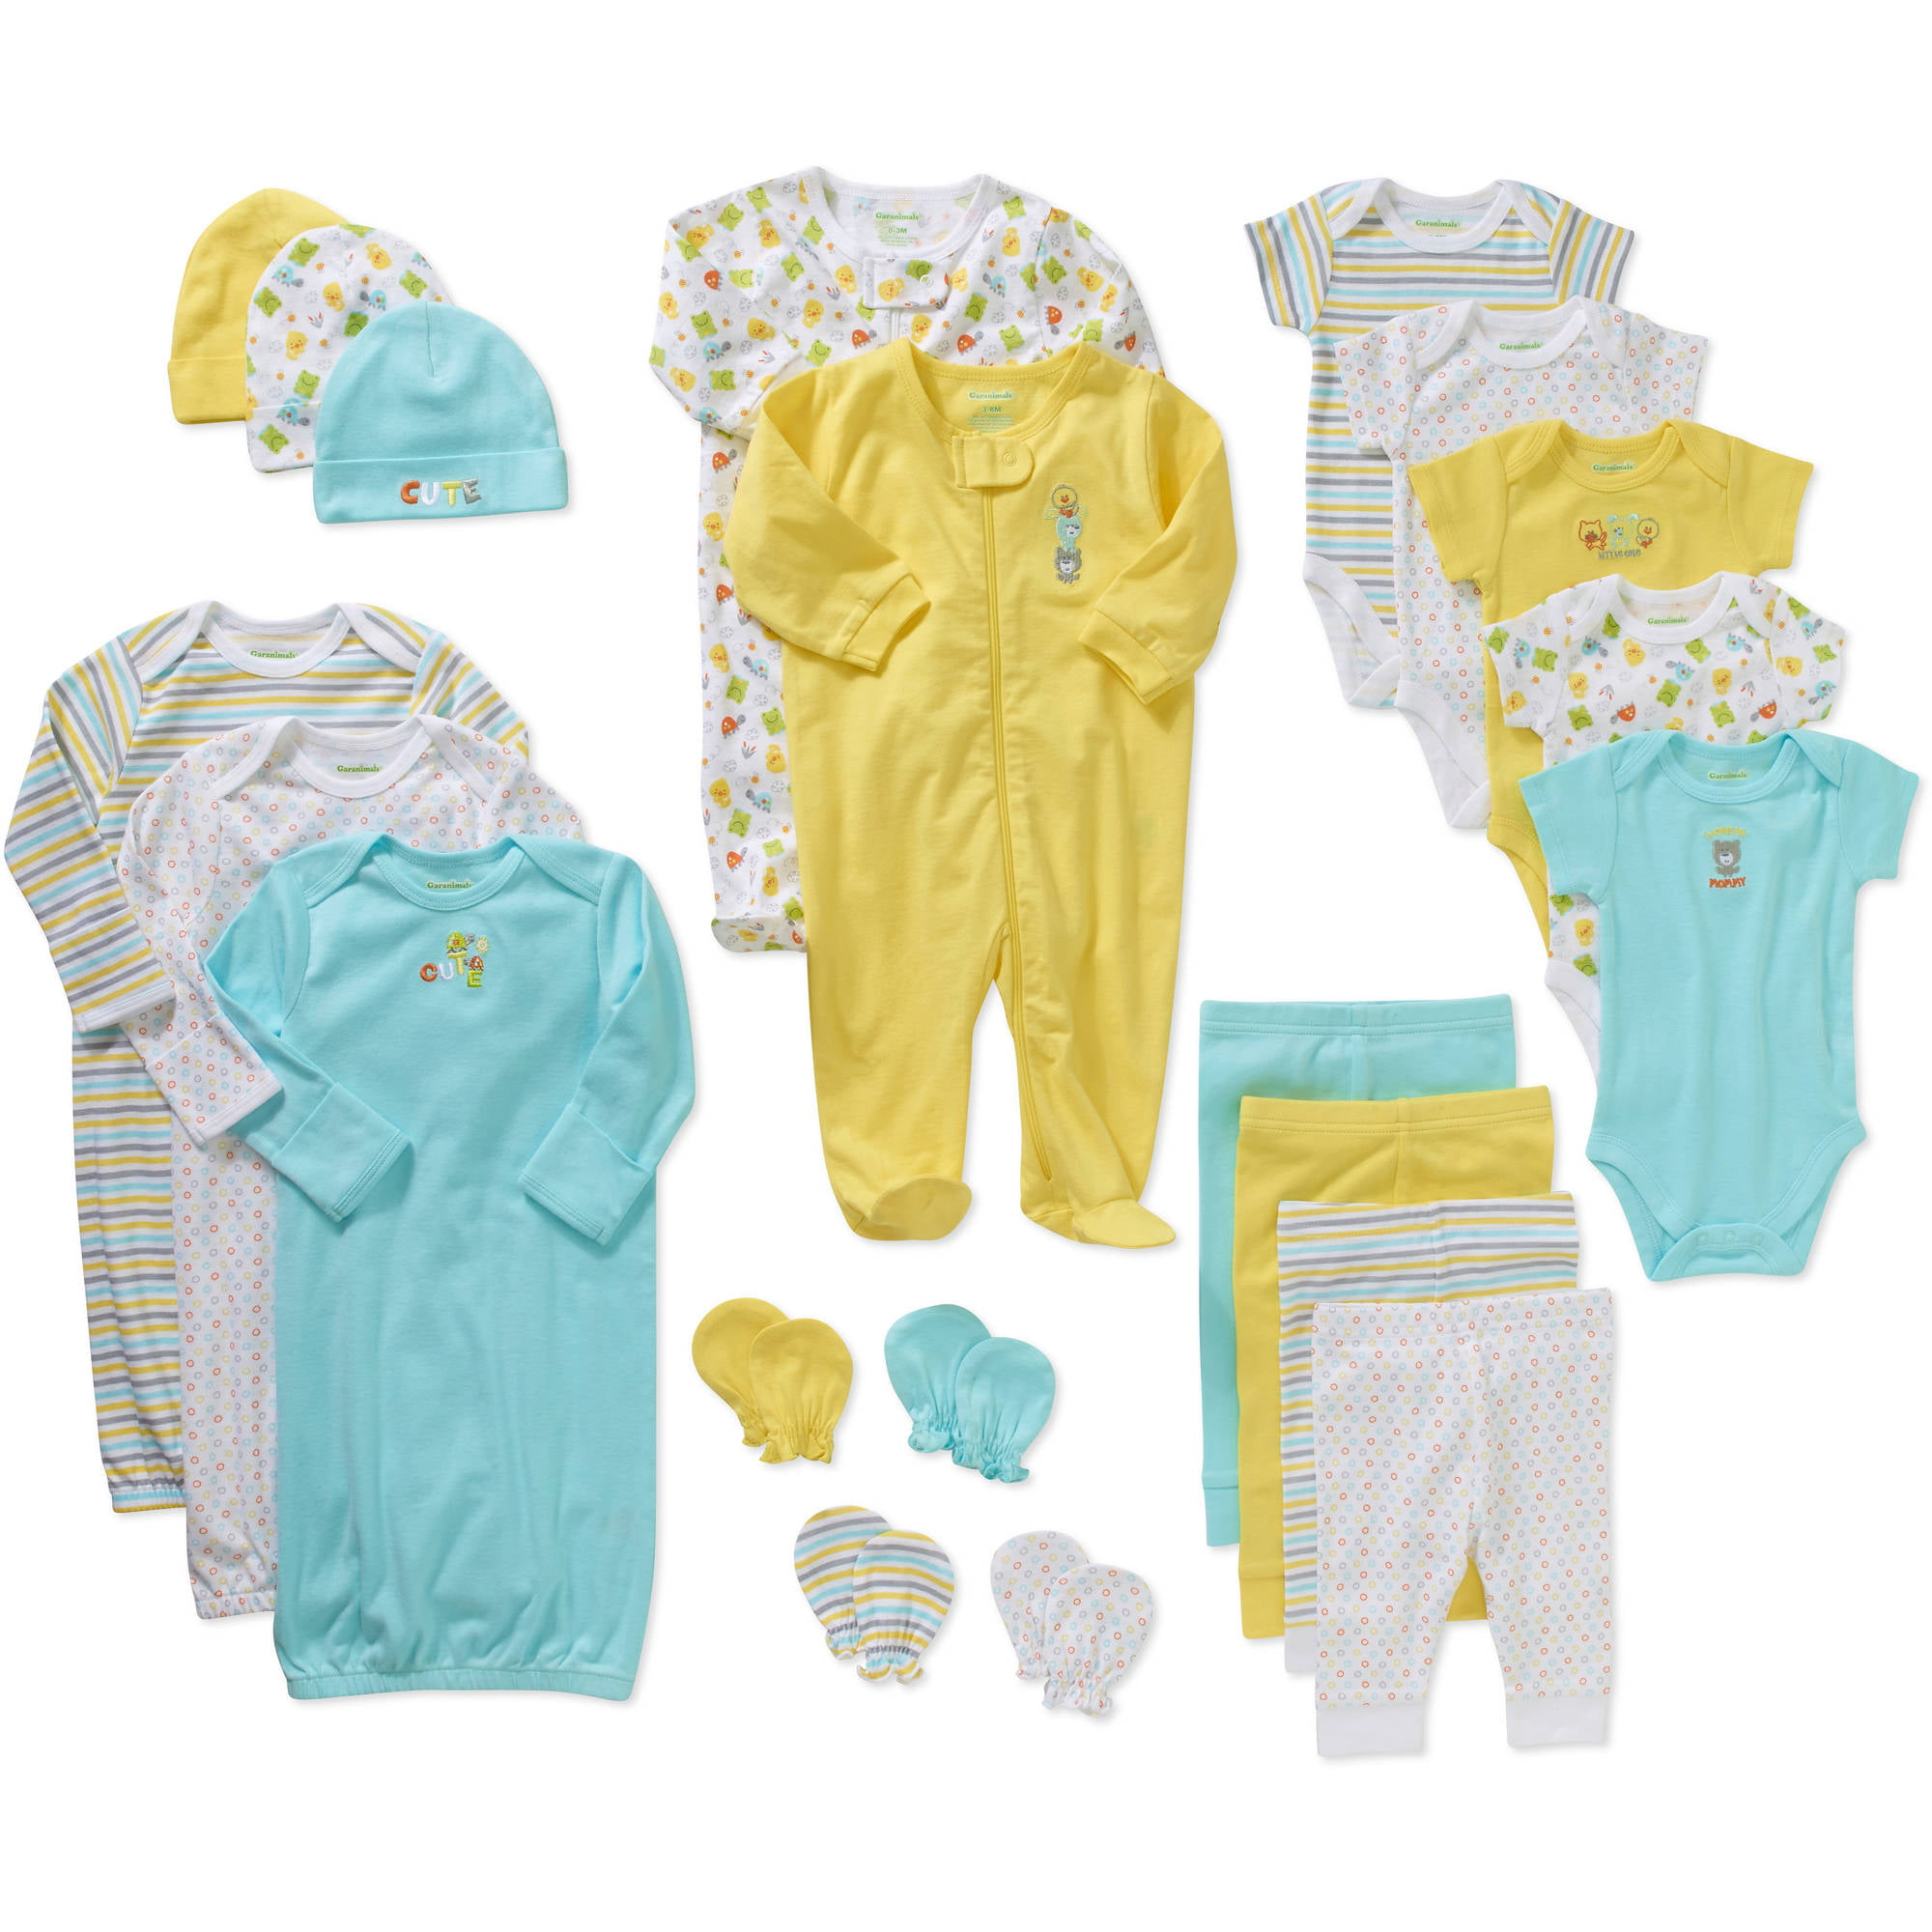 d516c288c40b4 Garanimals - Garanimals Newborn Baby Boy or Baby Girl Unisex Baby Boy or  Baby Girl 21 Pc Layette Gift Set - Walmart.com